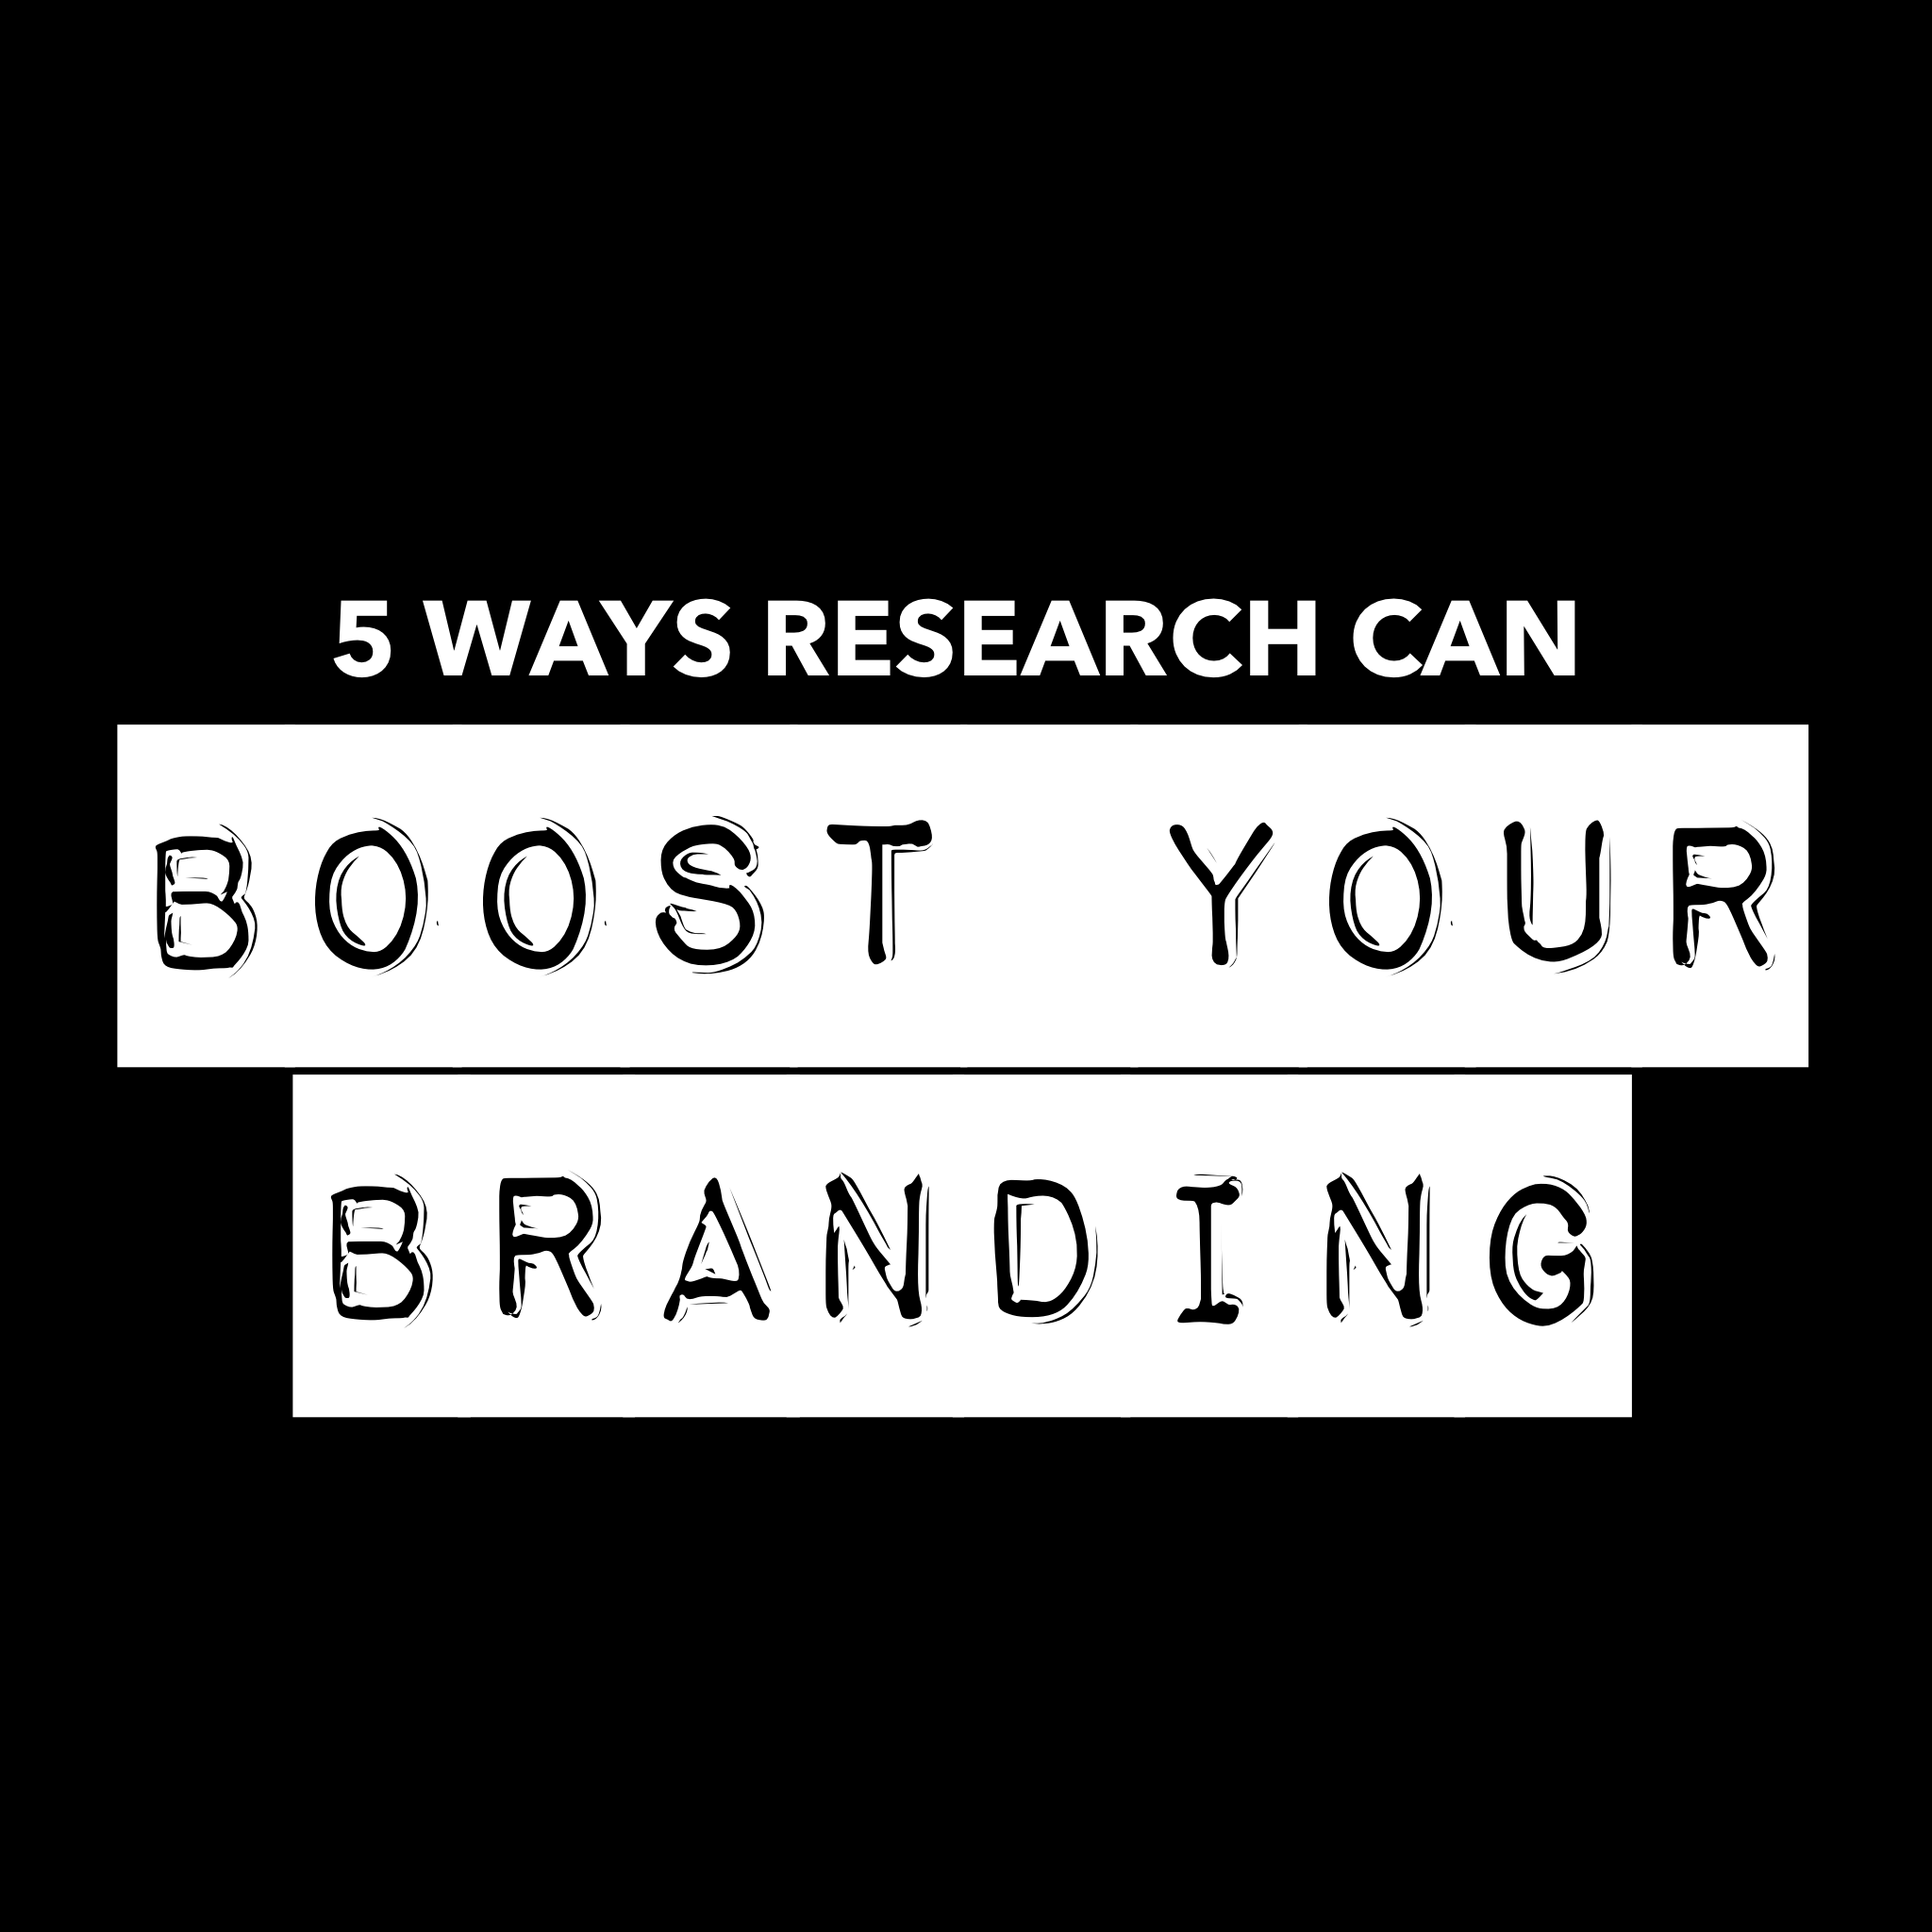 5 Ways Research Can Boost Your Branding